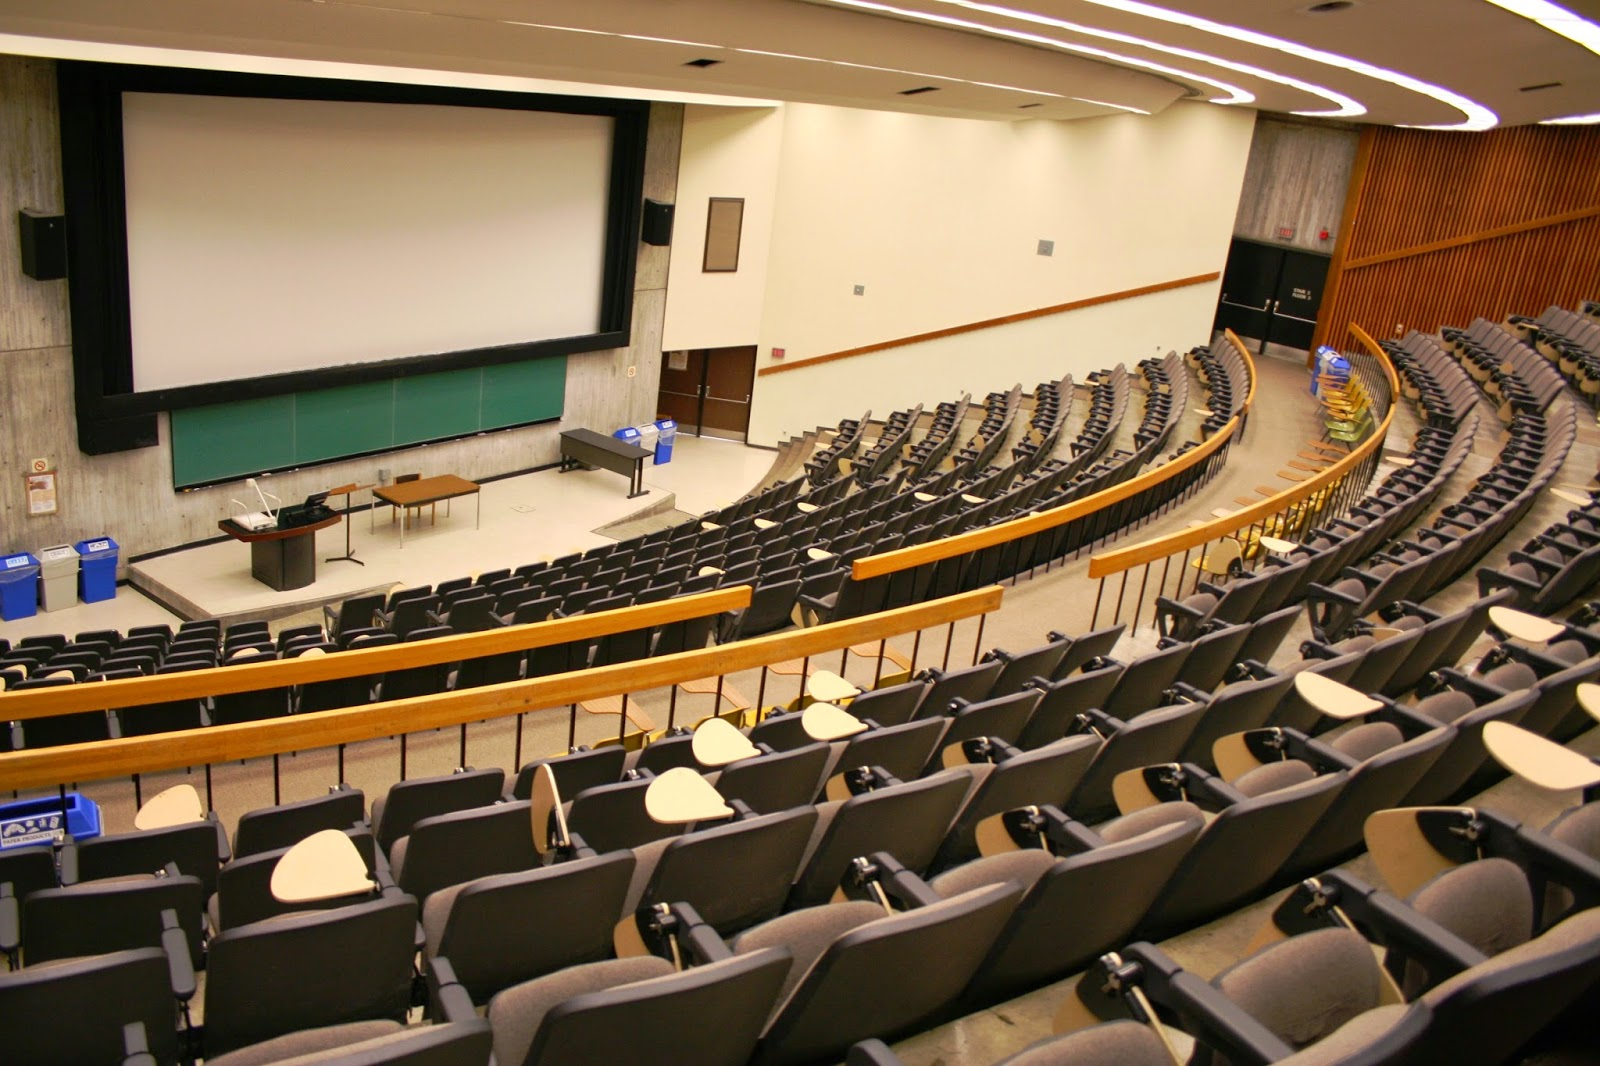 Your standard university lecture hall; the education provided in some places is far from standard however.